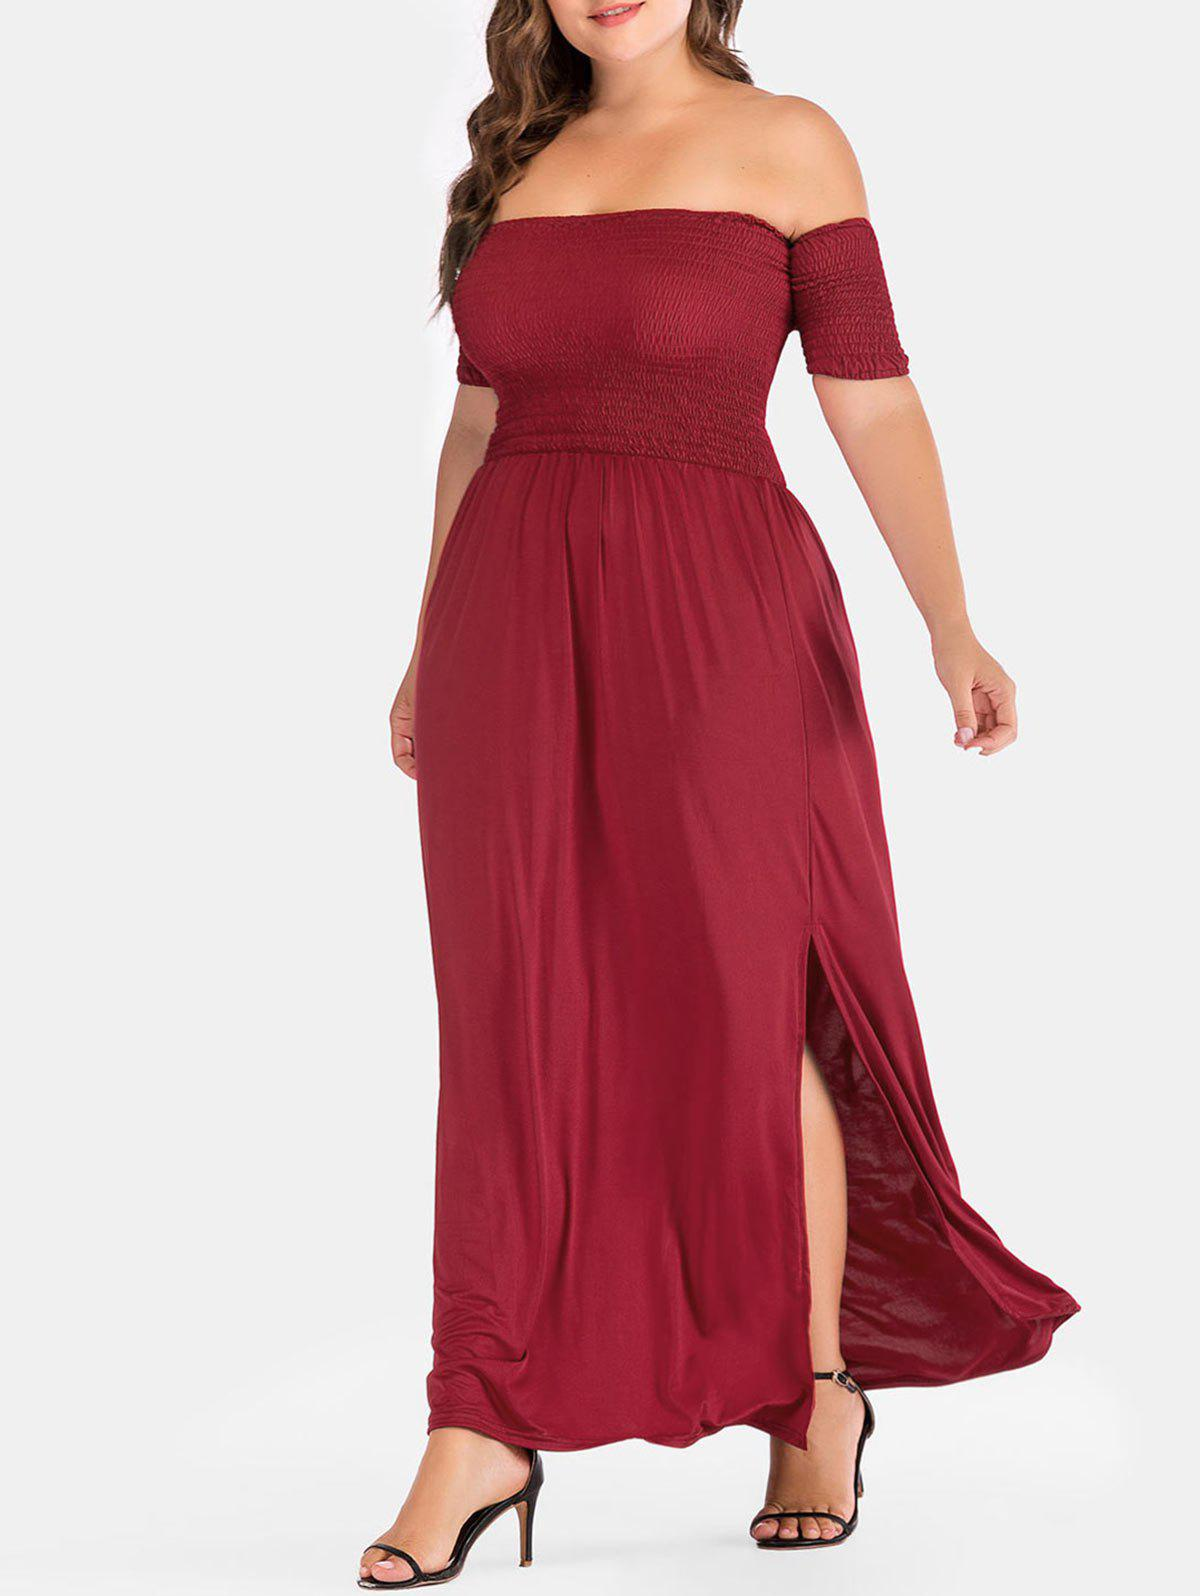 Shirred Plus Size Side Slit Maxi Dress - RED 2X